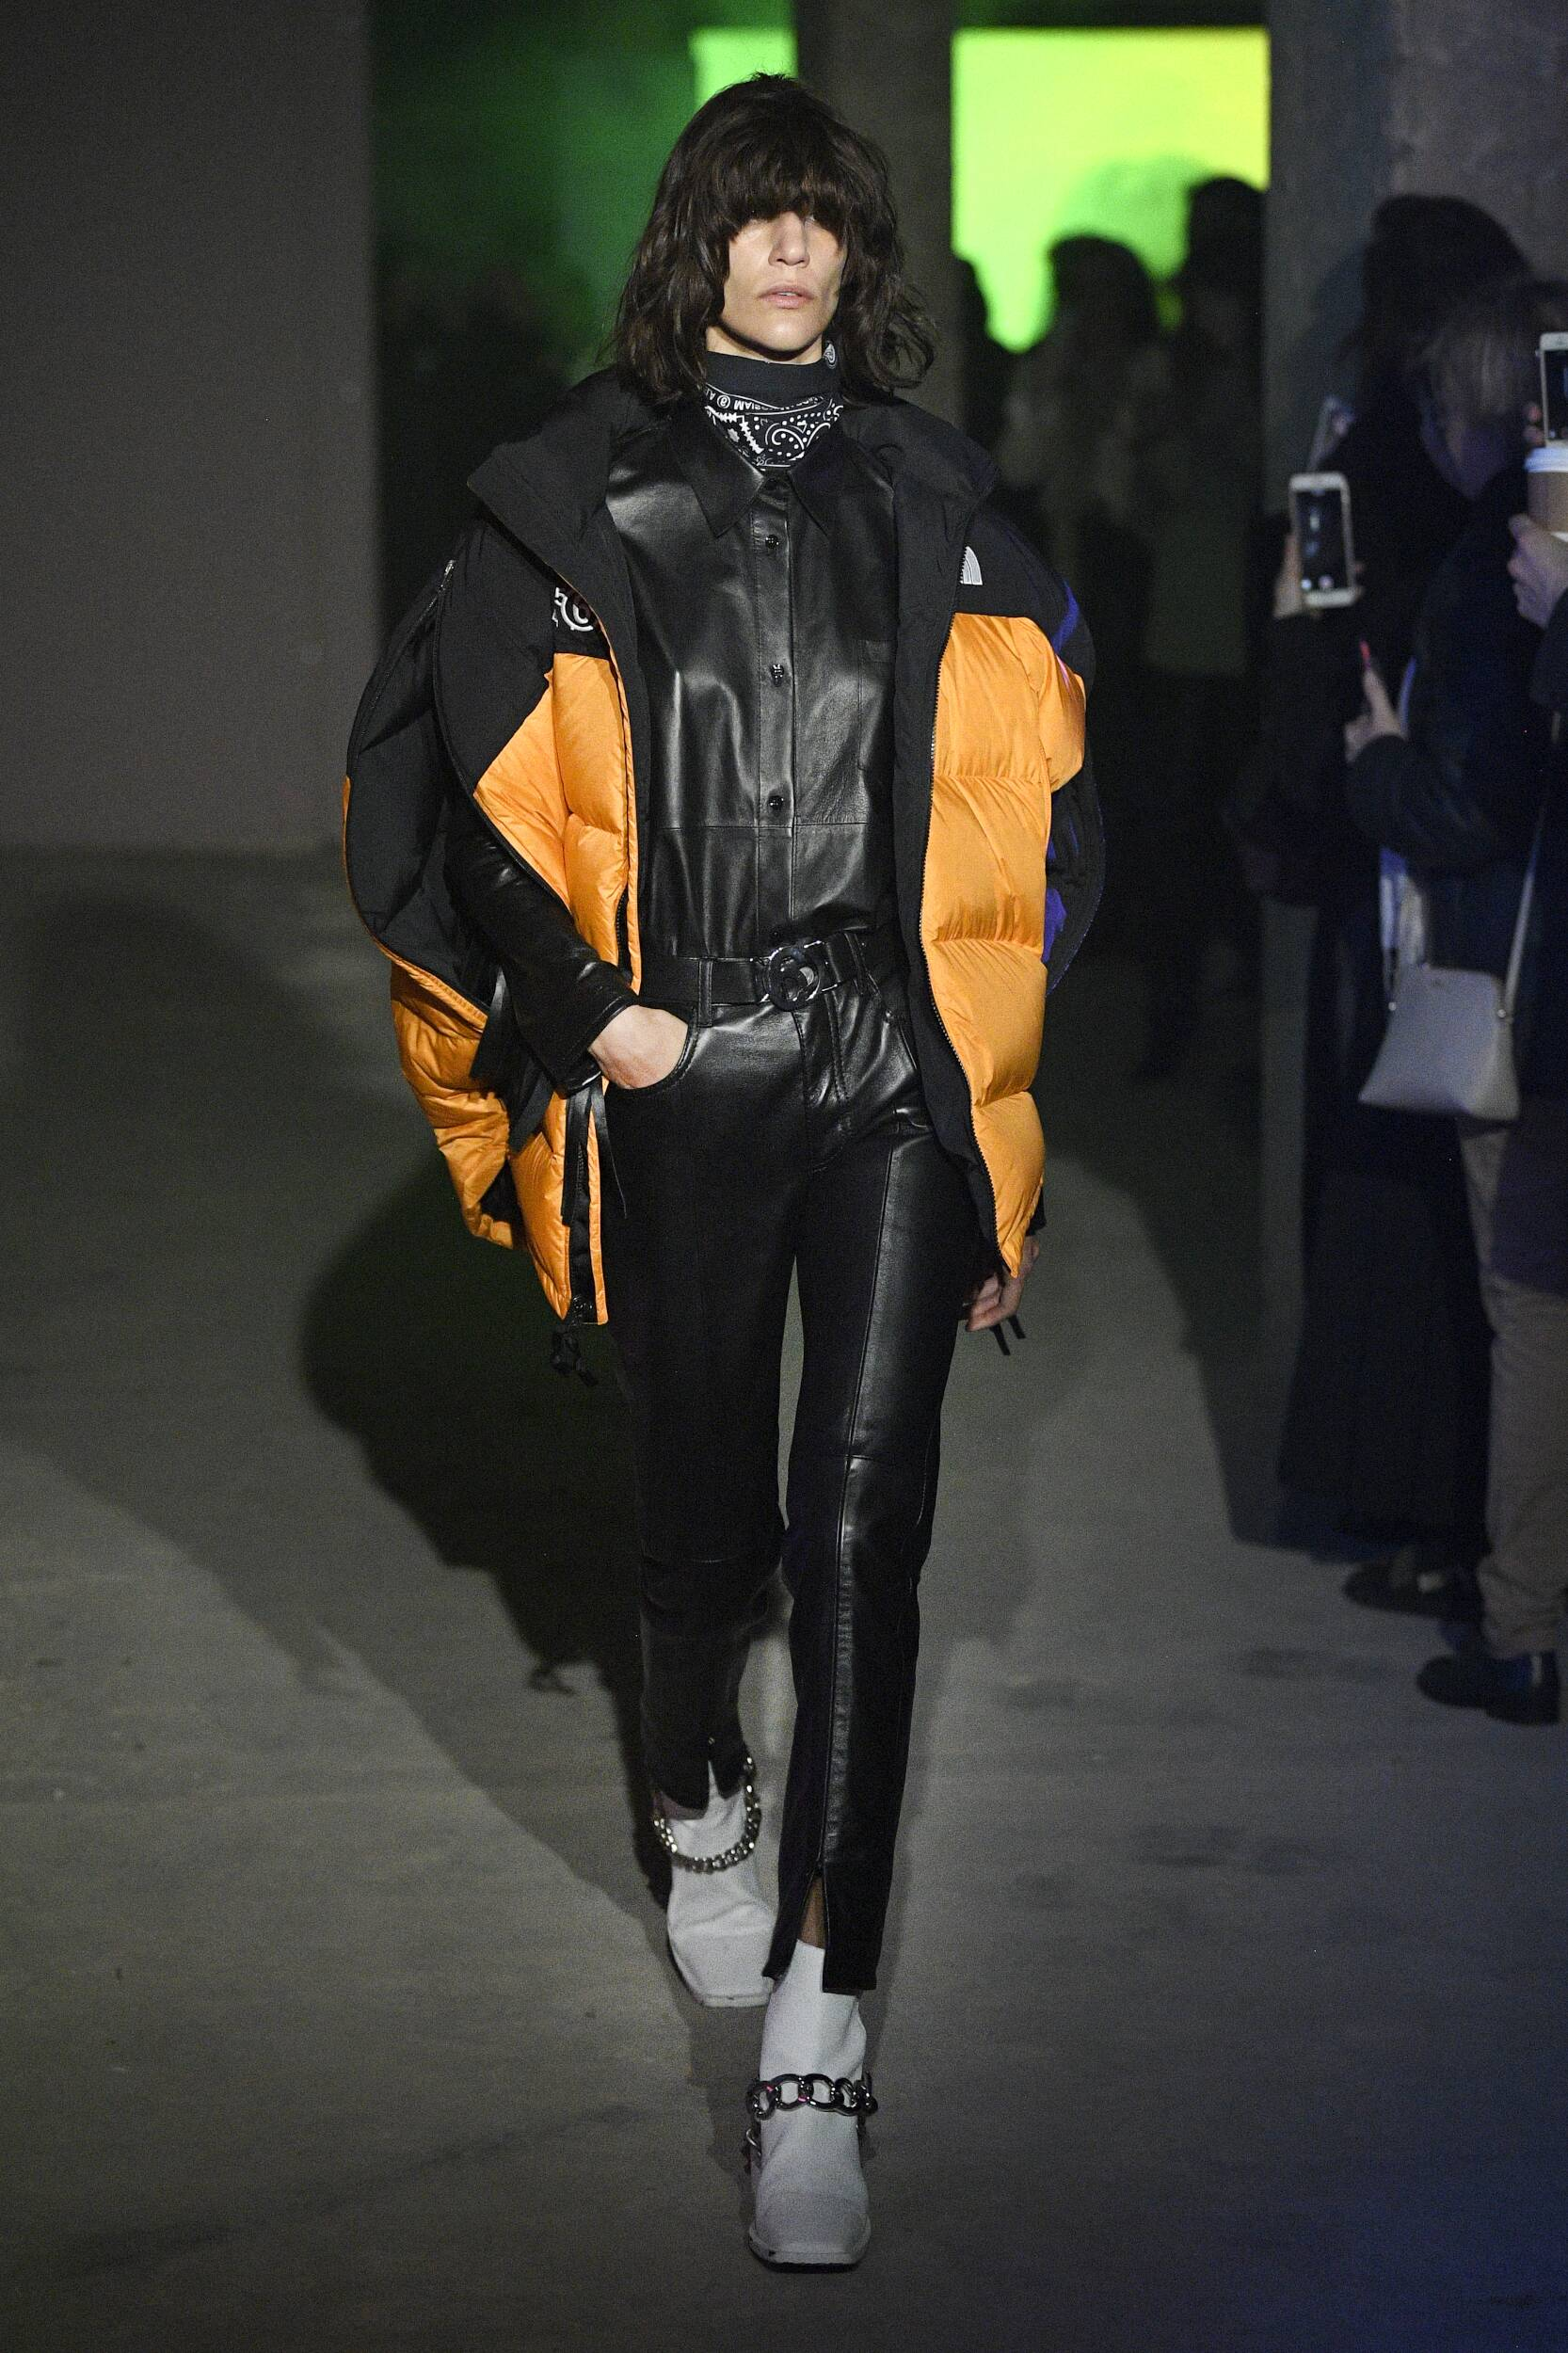 MM6 Maison Margiela Fall Winter 2020